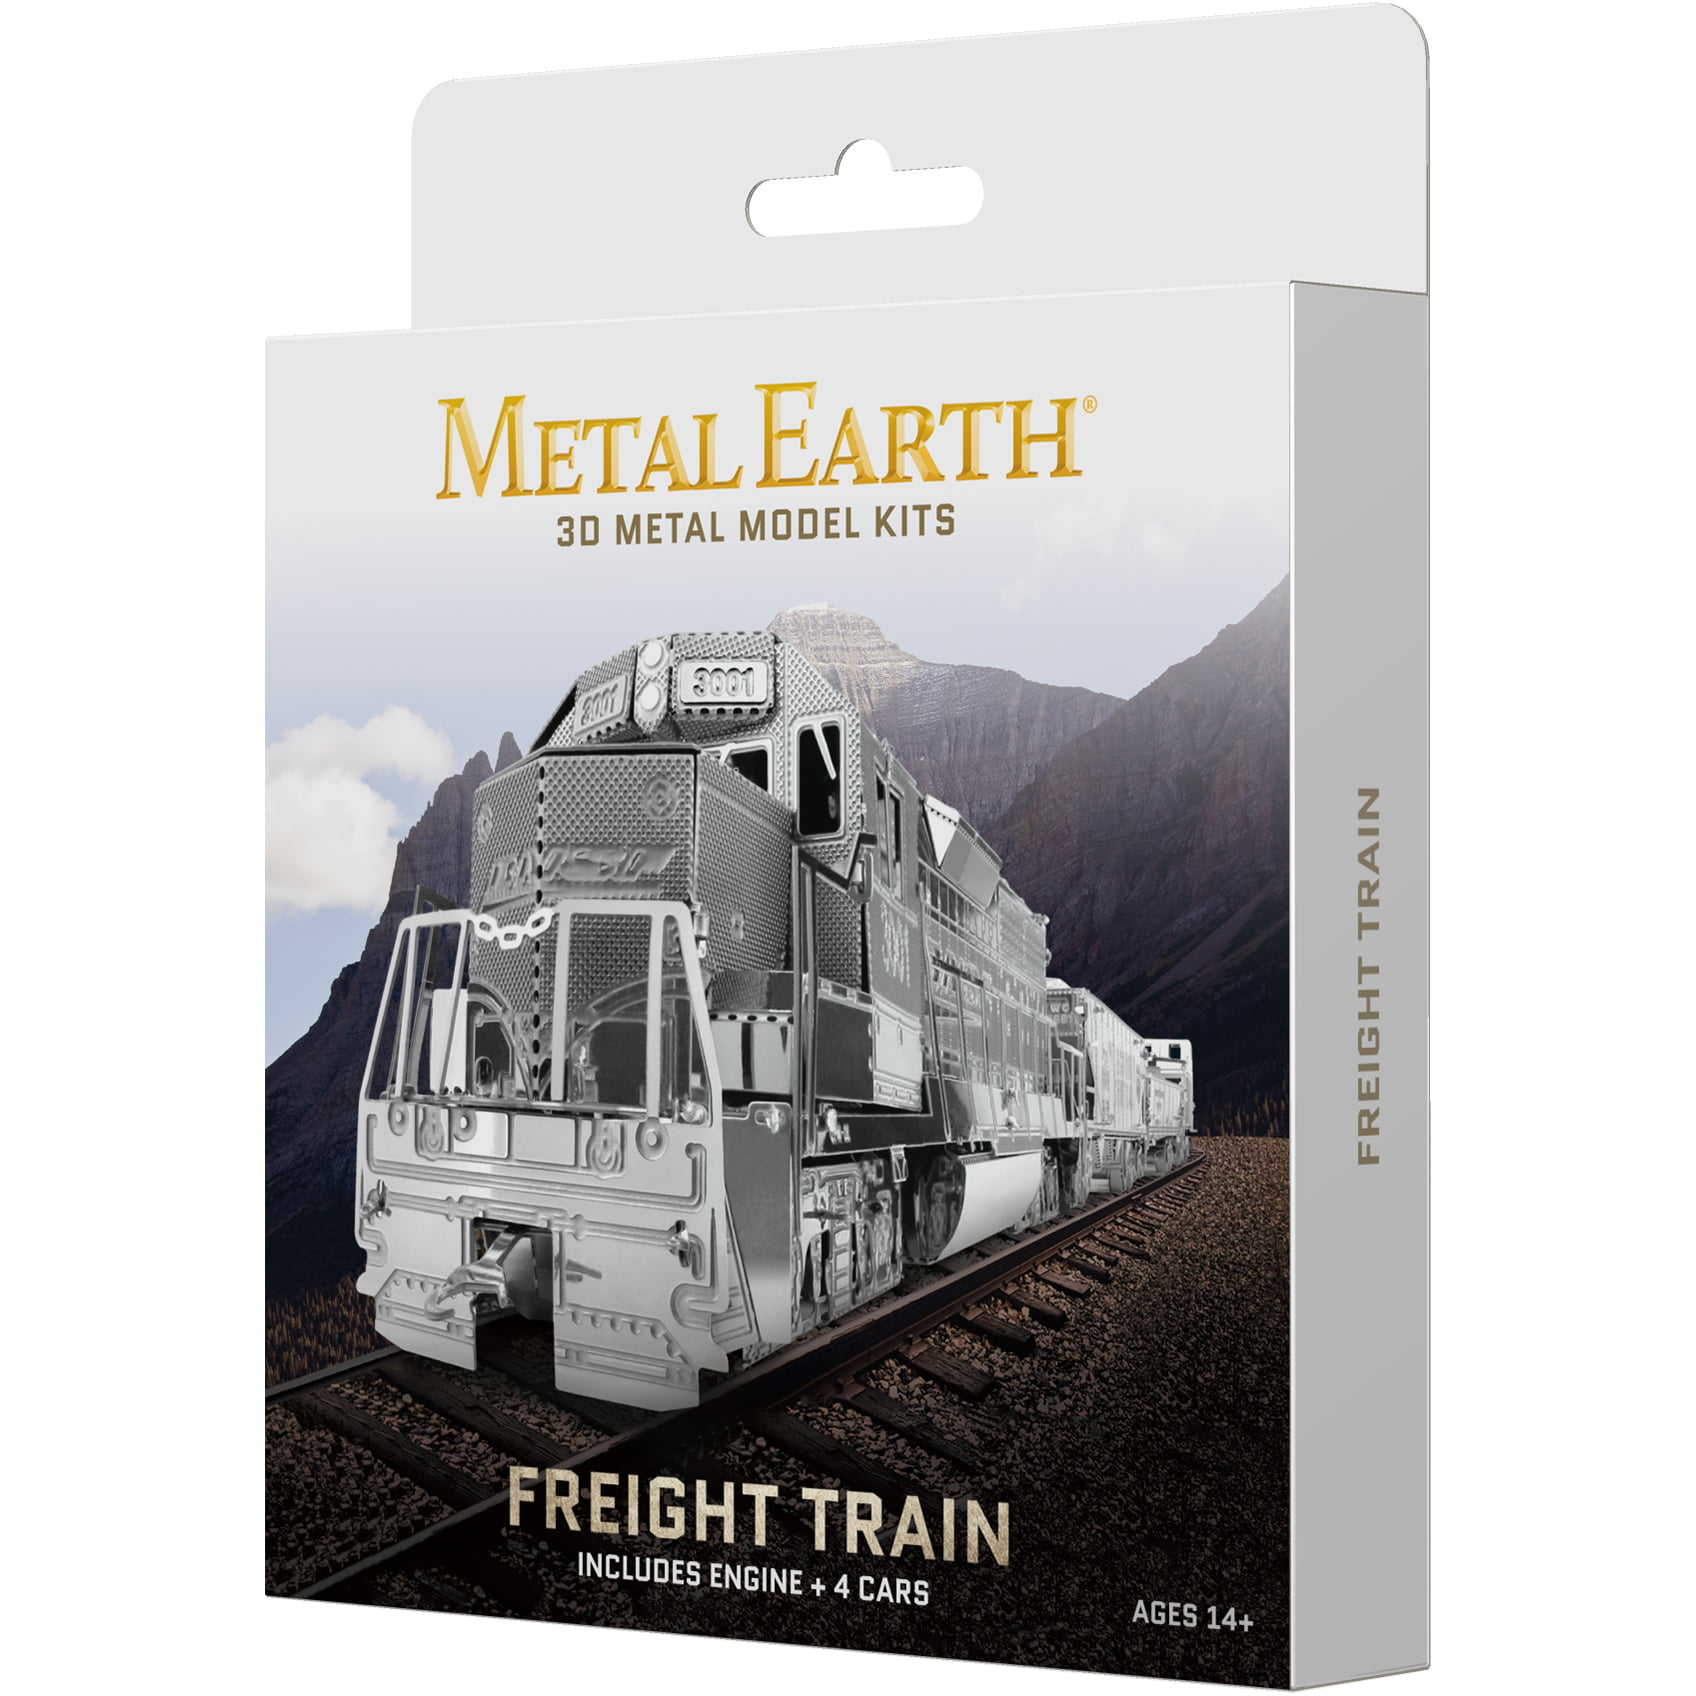 Metal Earth 3D Metal Model Kit Freight Train Box Set by Fascinations